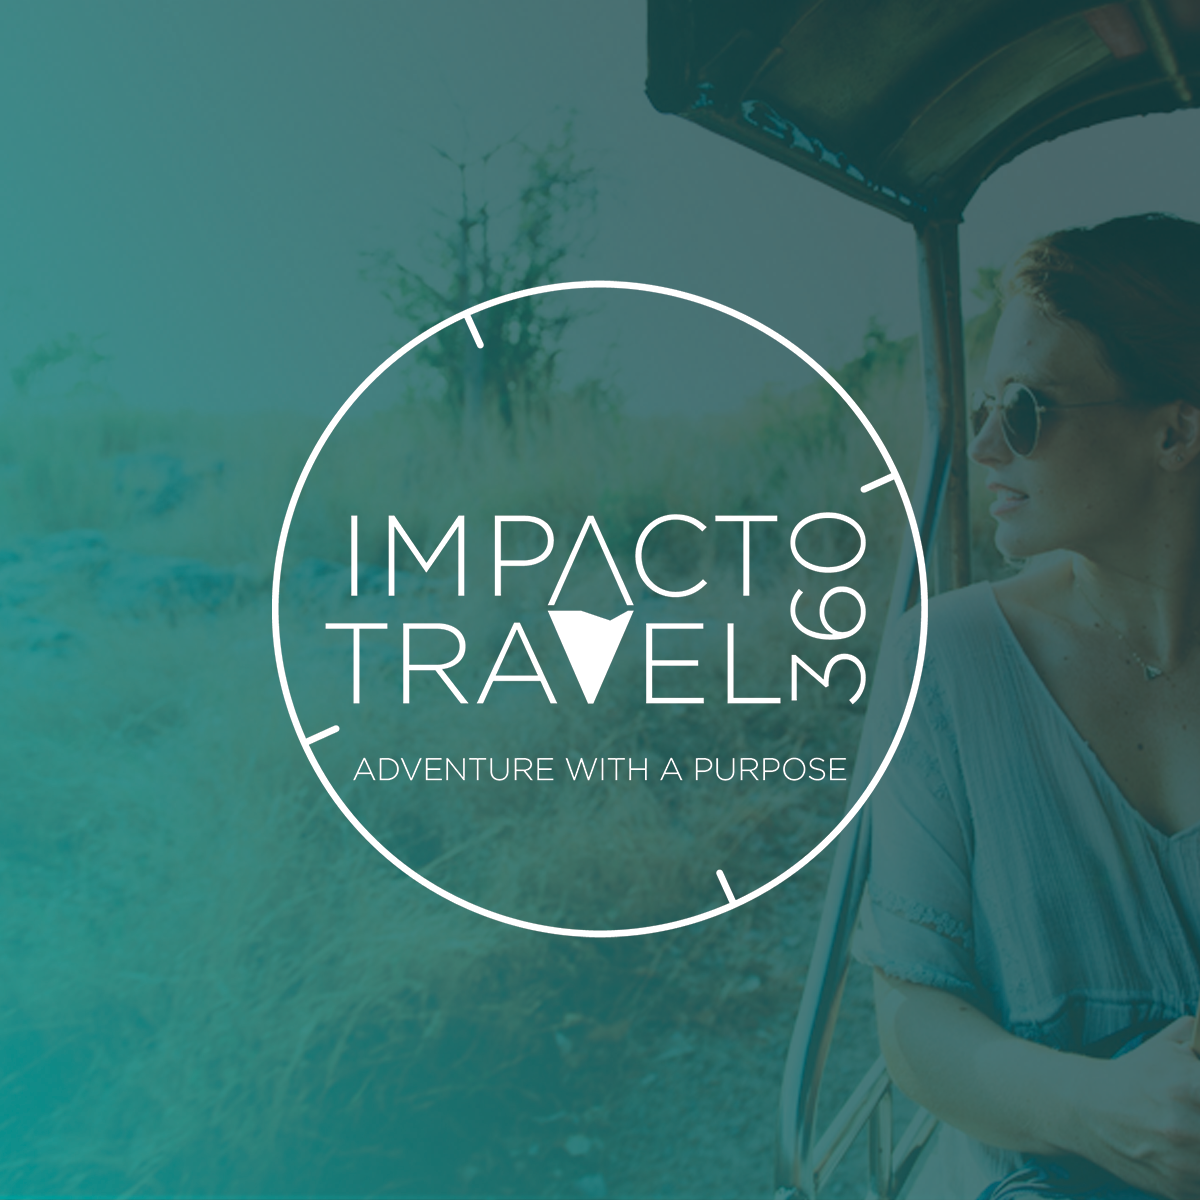 Impact Travel 360: Adventure with a purpose